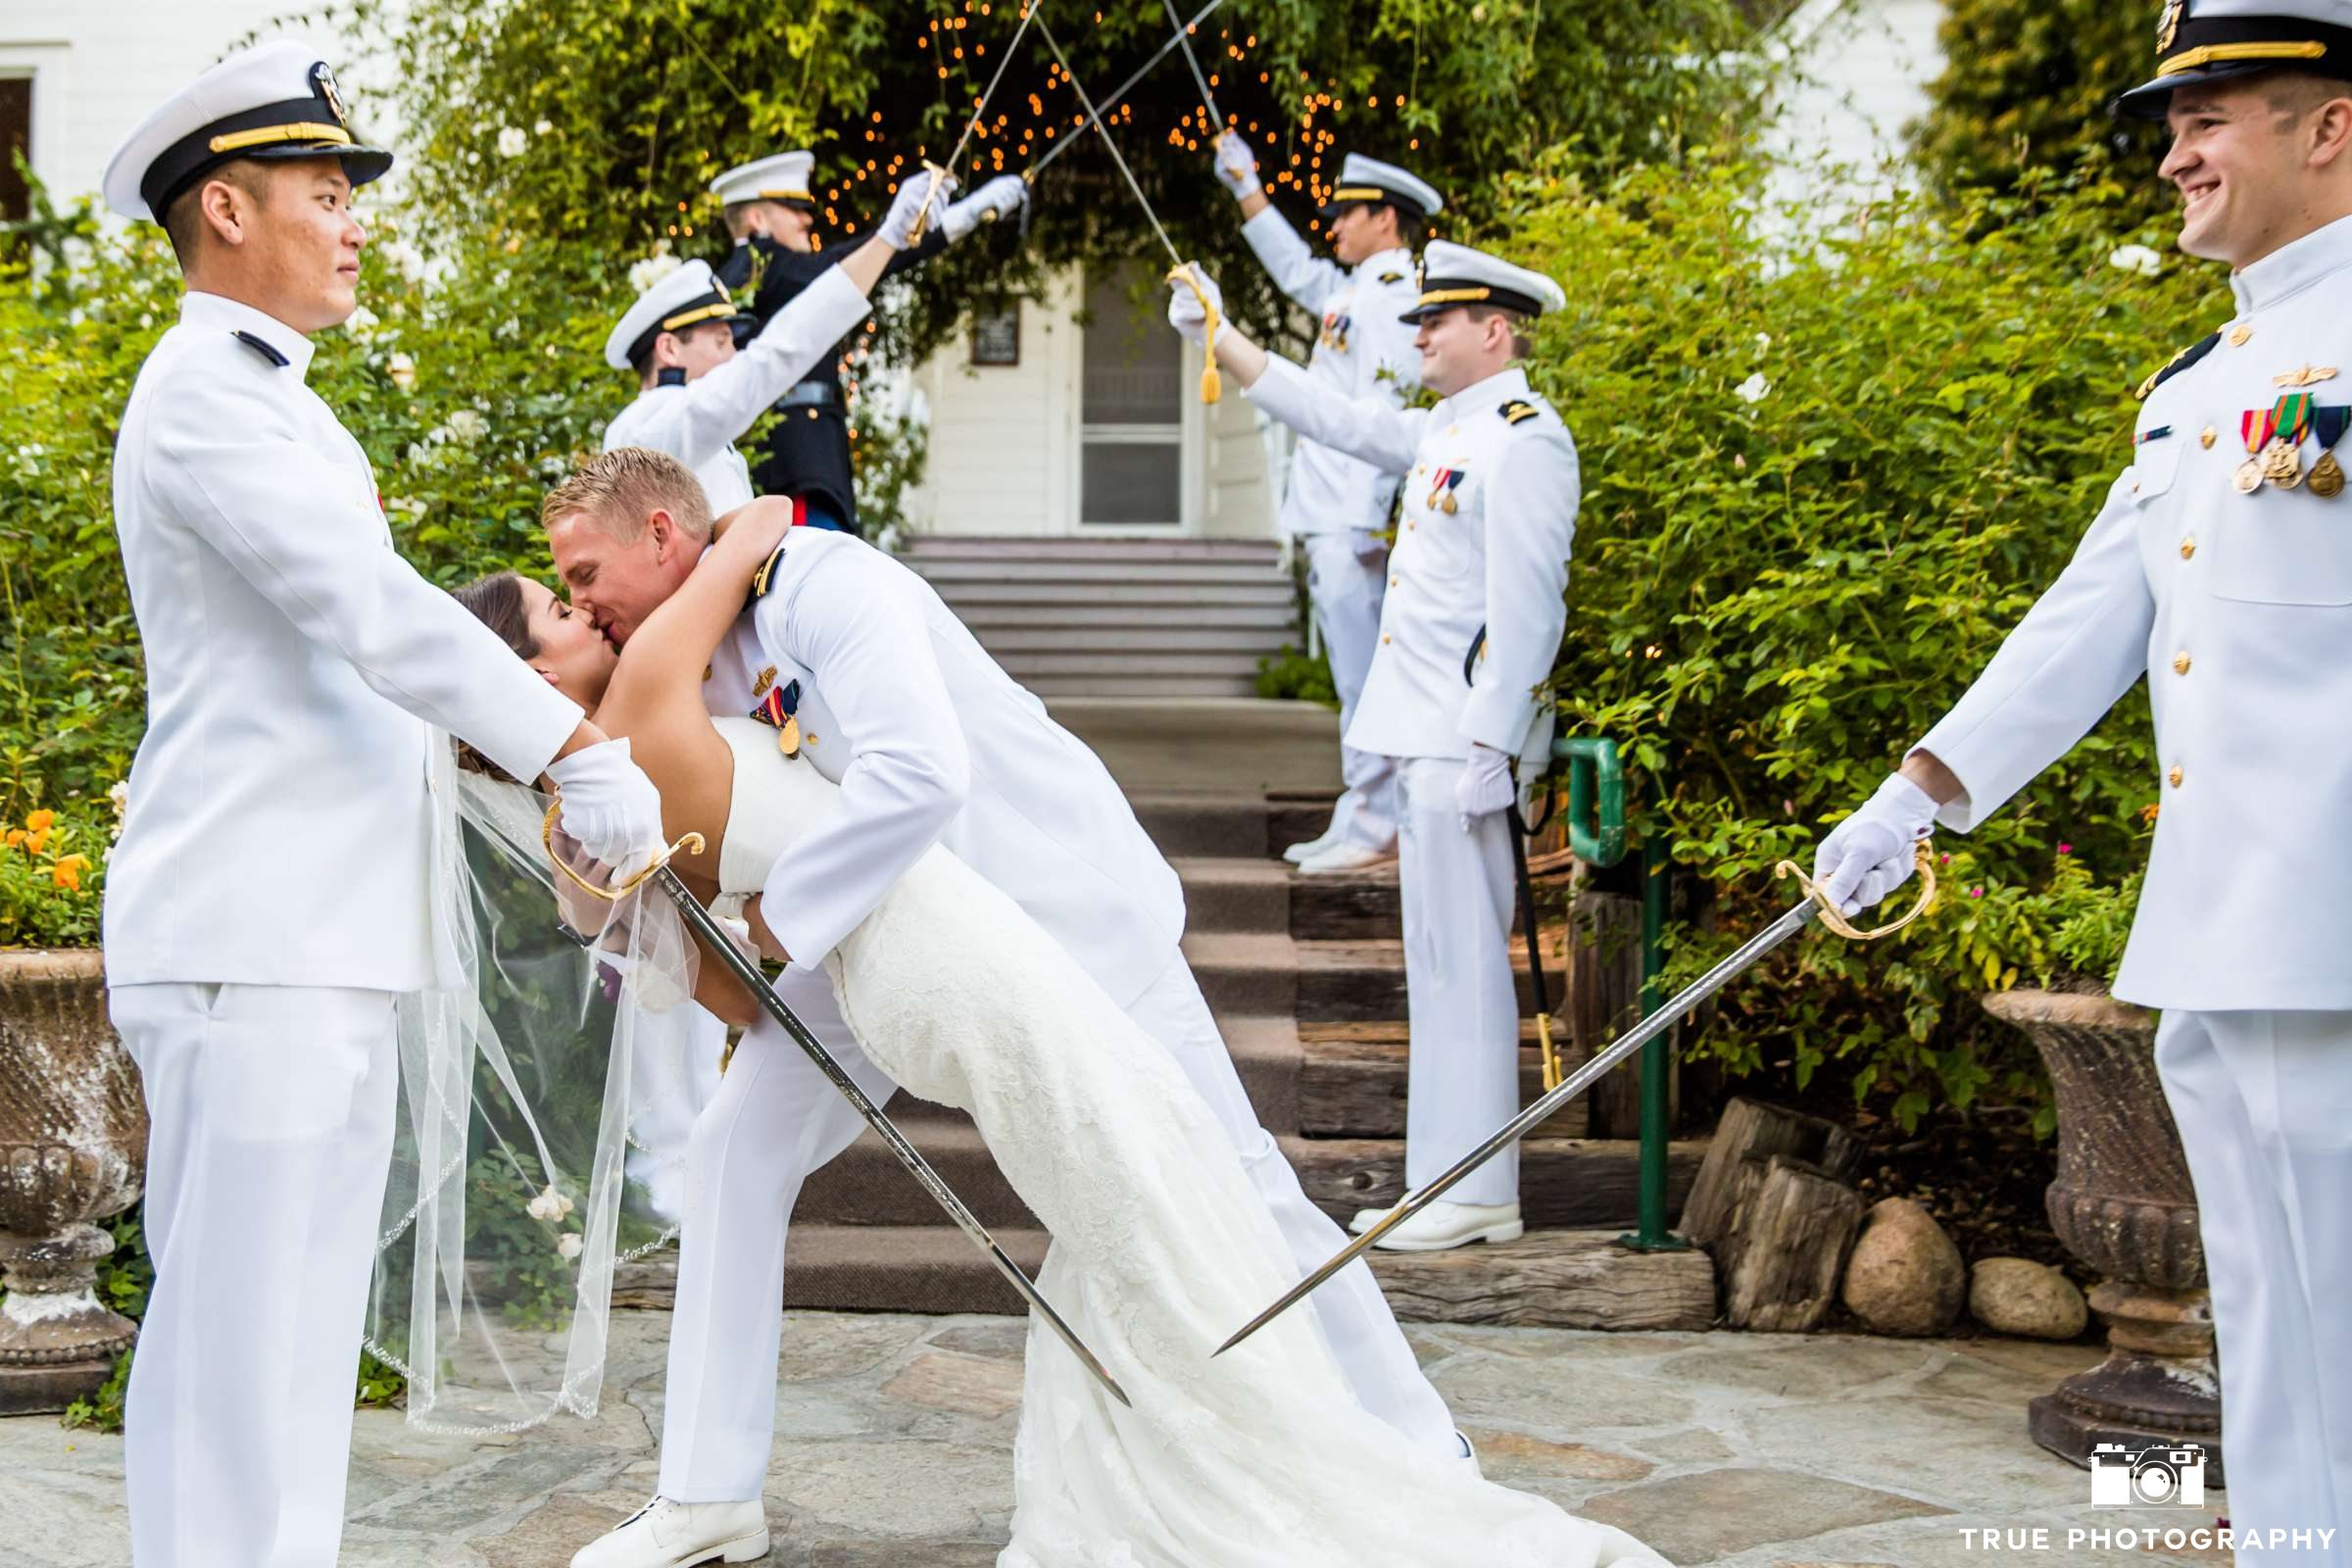 Newlyweds kiss beneath arch of swords.